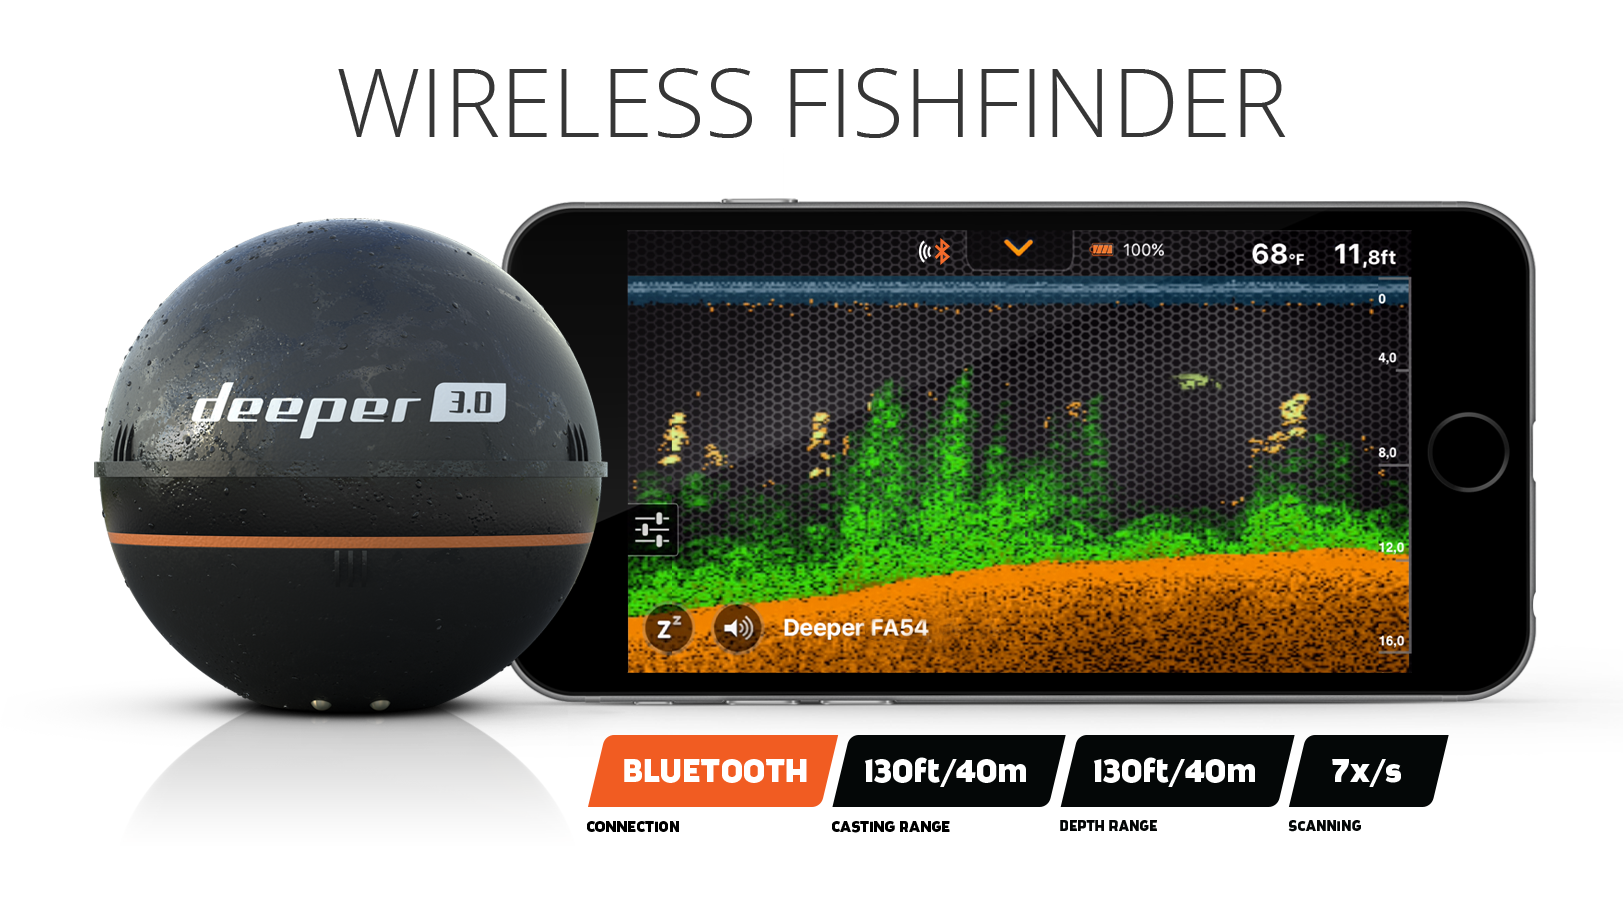 Deeper fishfinder smart sonar pro wifi technology for for Deeper fish finder